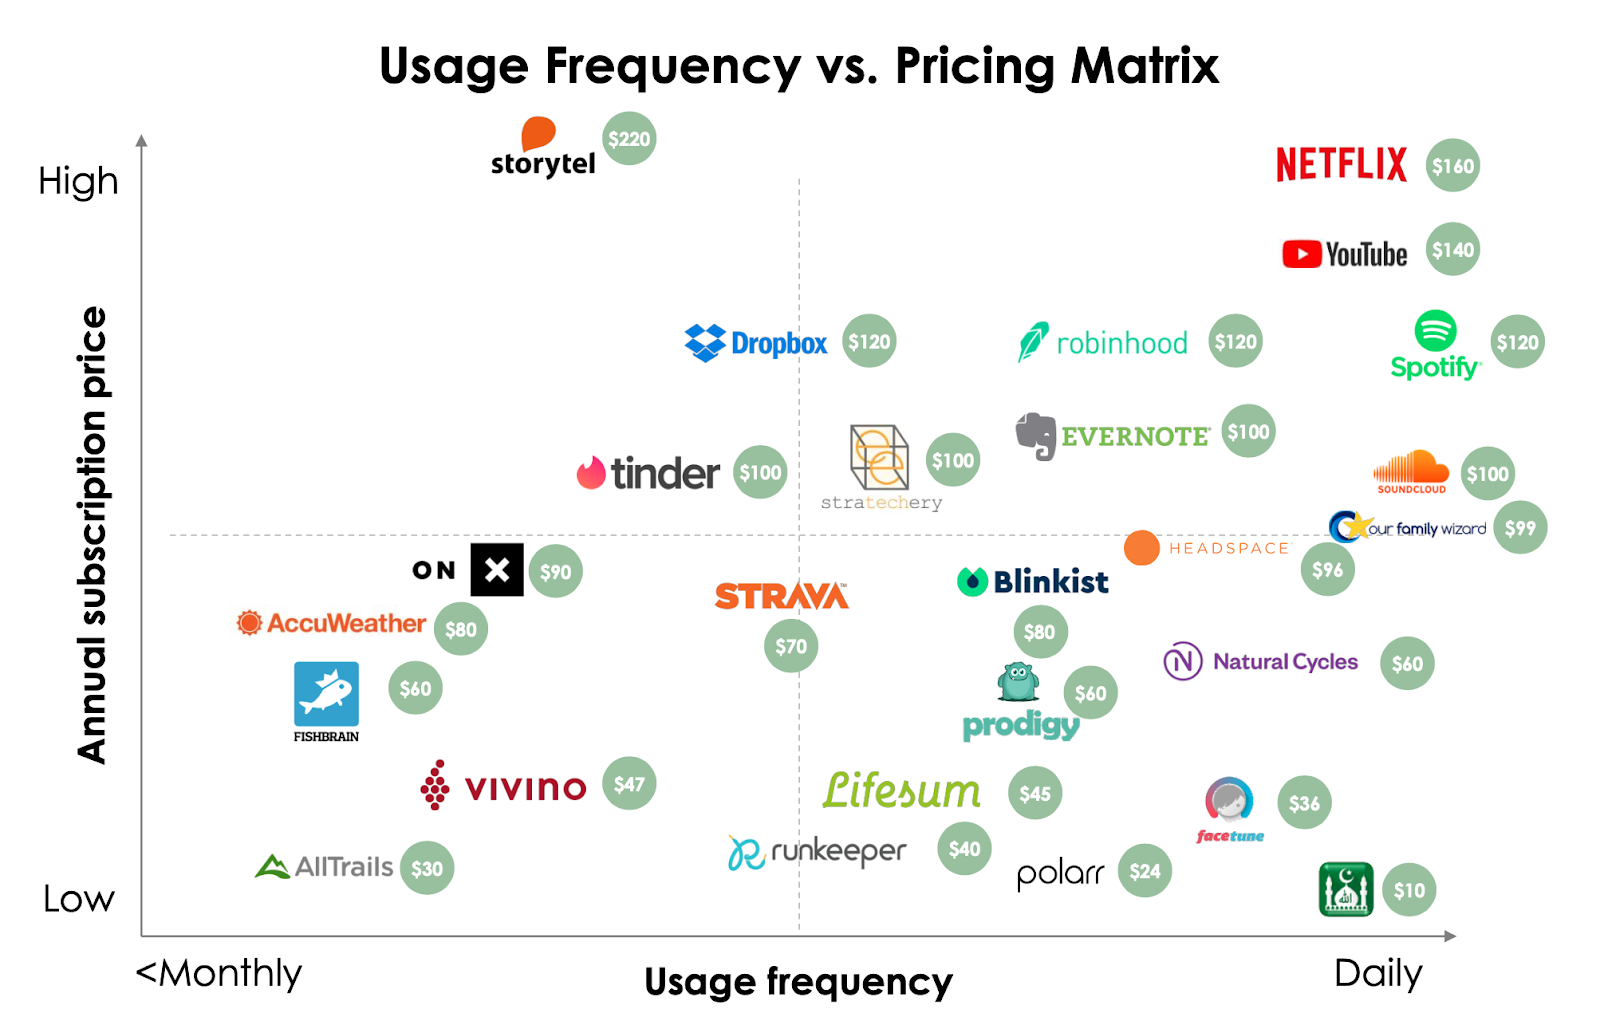 Usage frequency vs Pricing Matrix regression chart